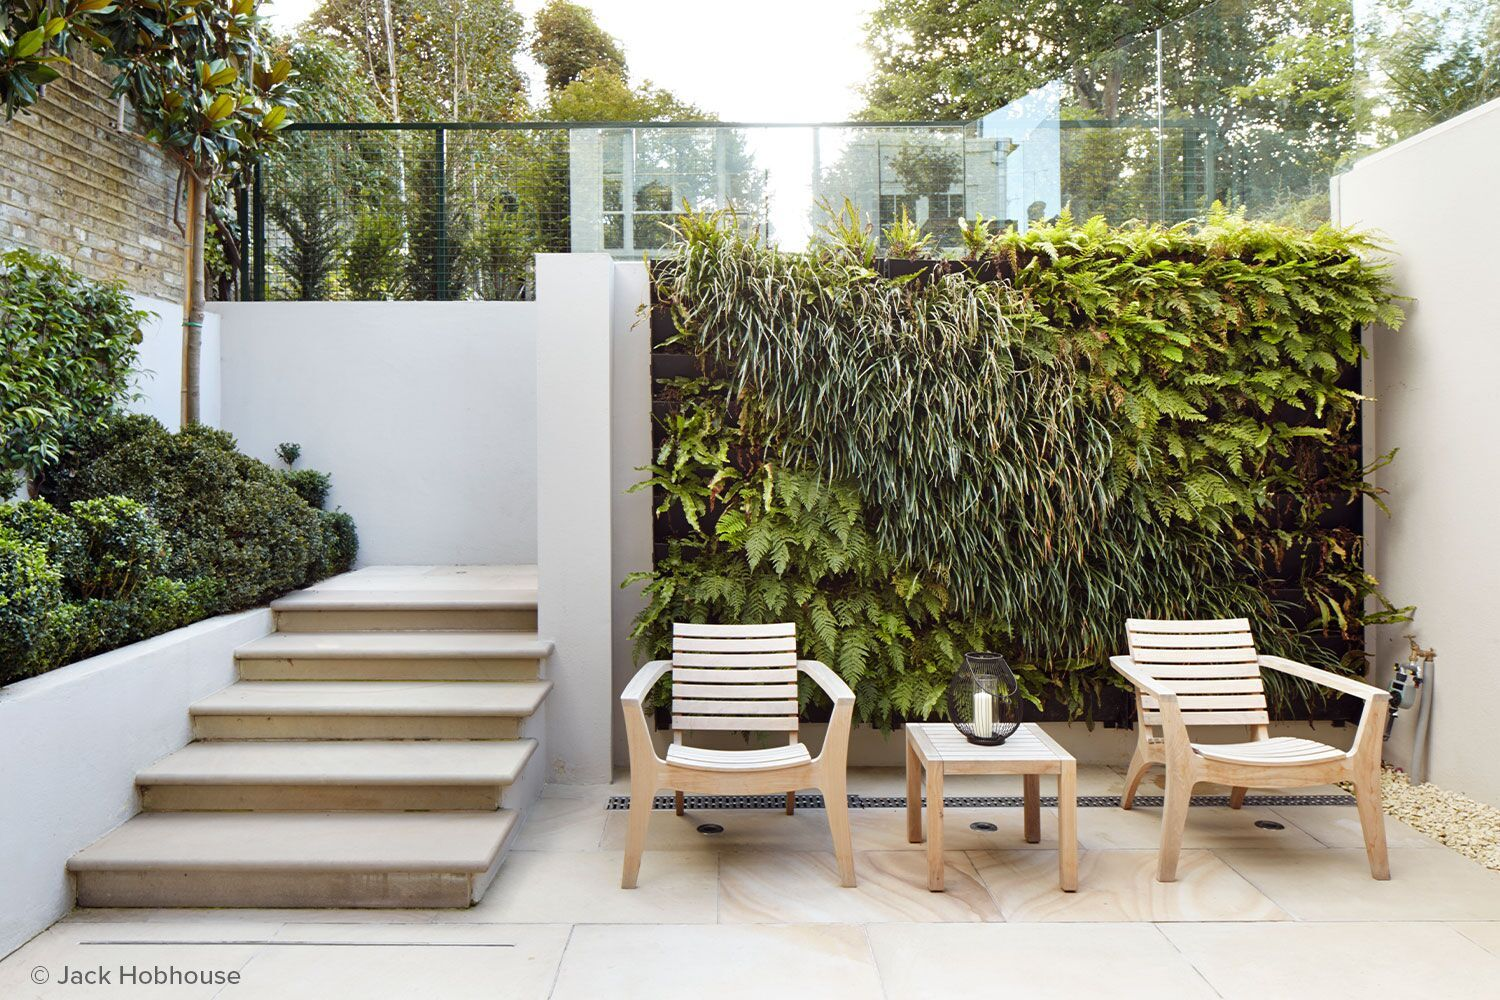 outdoor scene garden wall with patio chairs